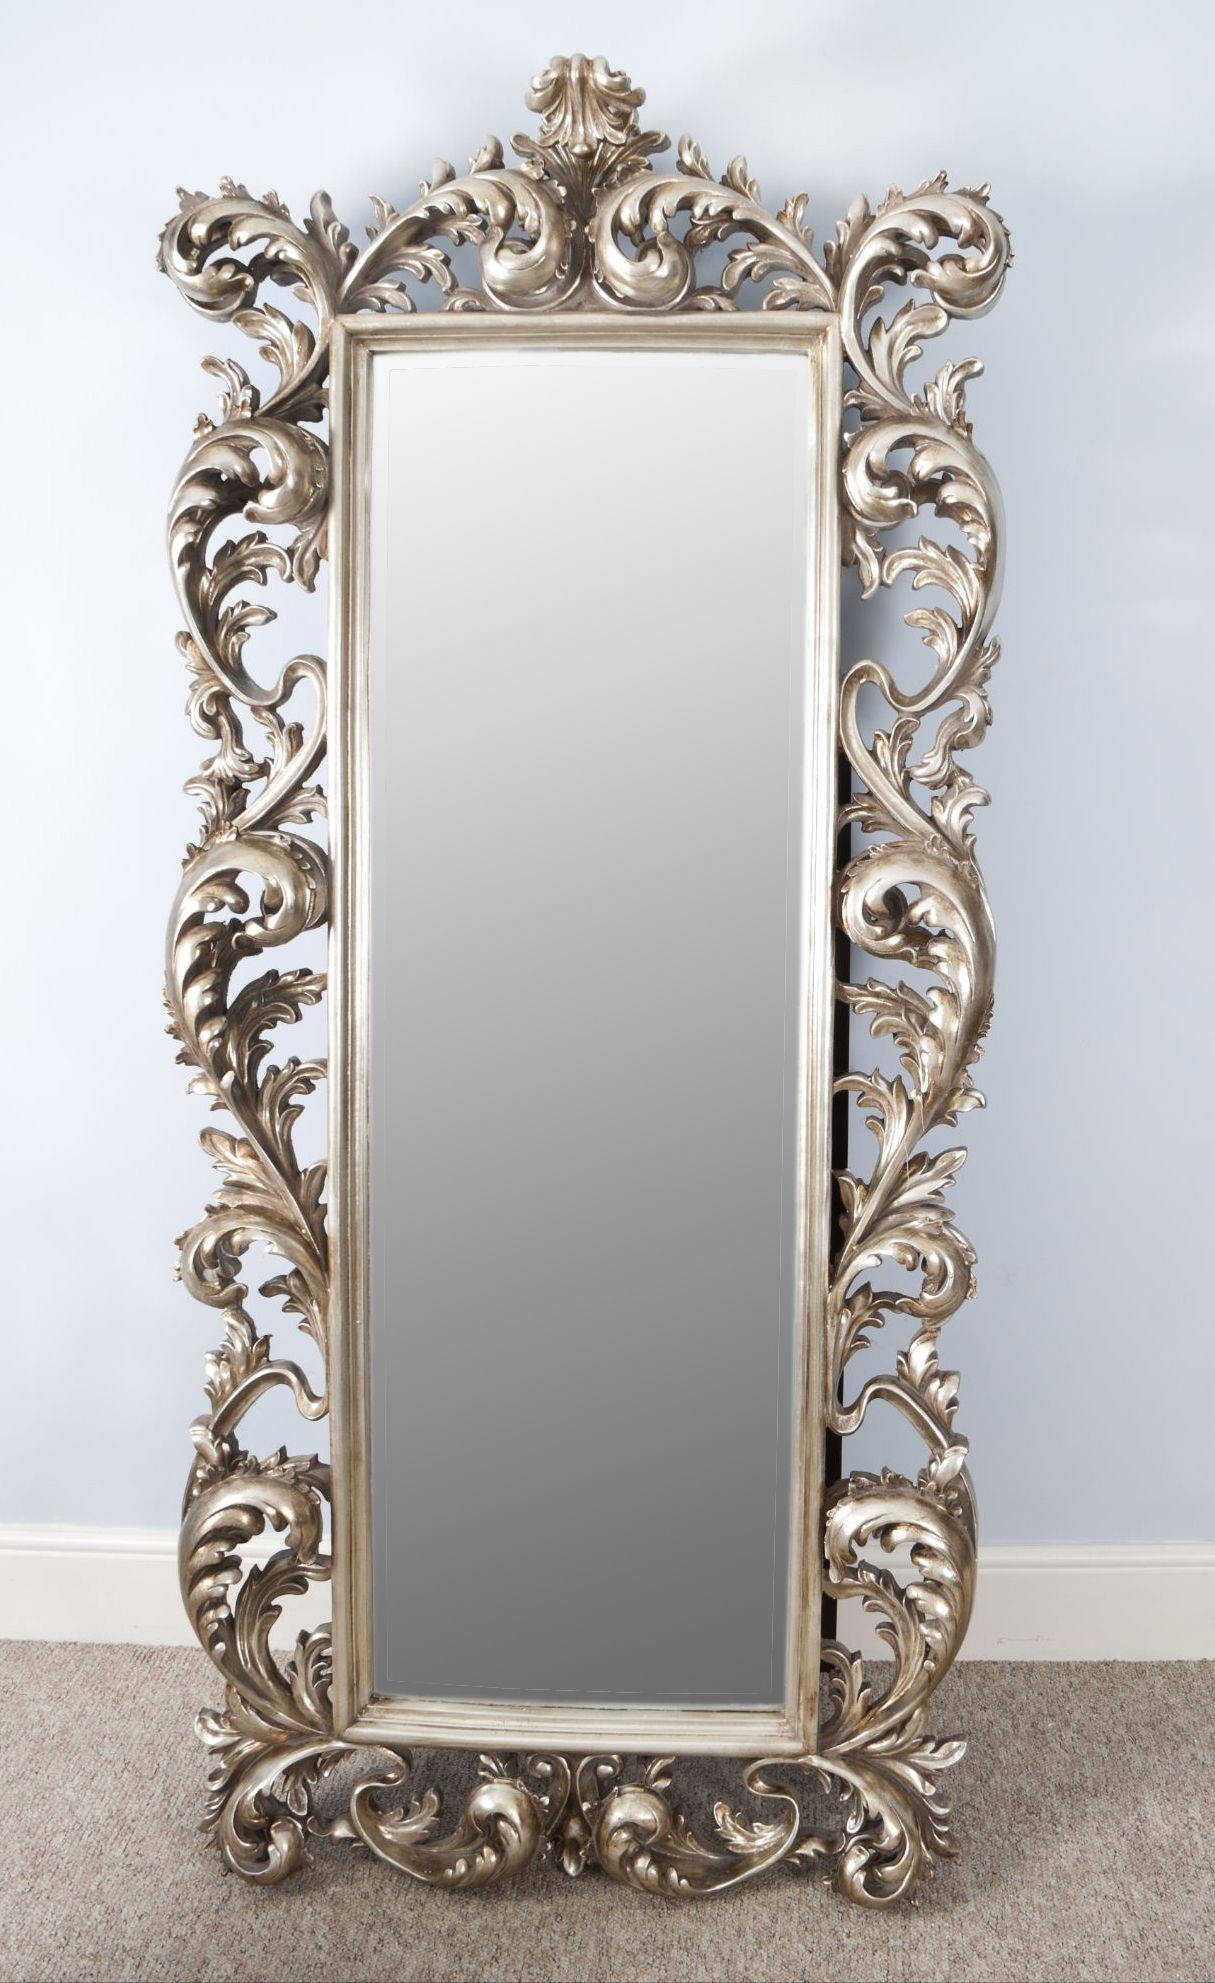 Classic Impression On Antique Wall Mirrors | Vwho for Antiqued Wall Mirrors (Image 10 of 25)